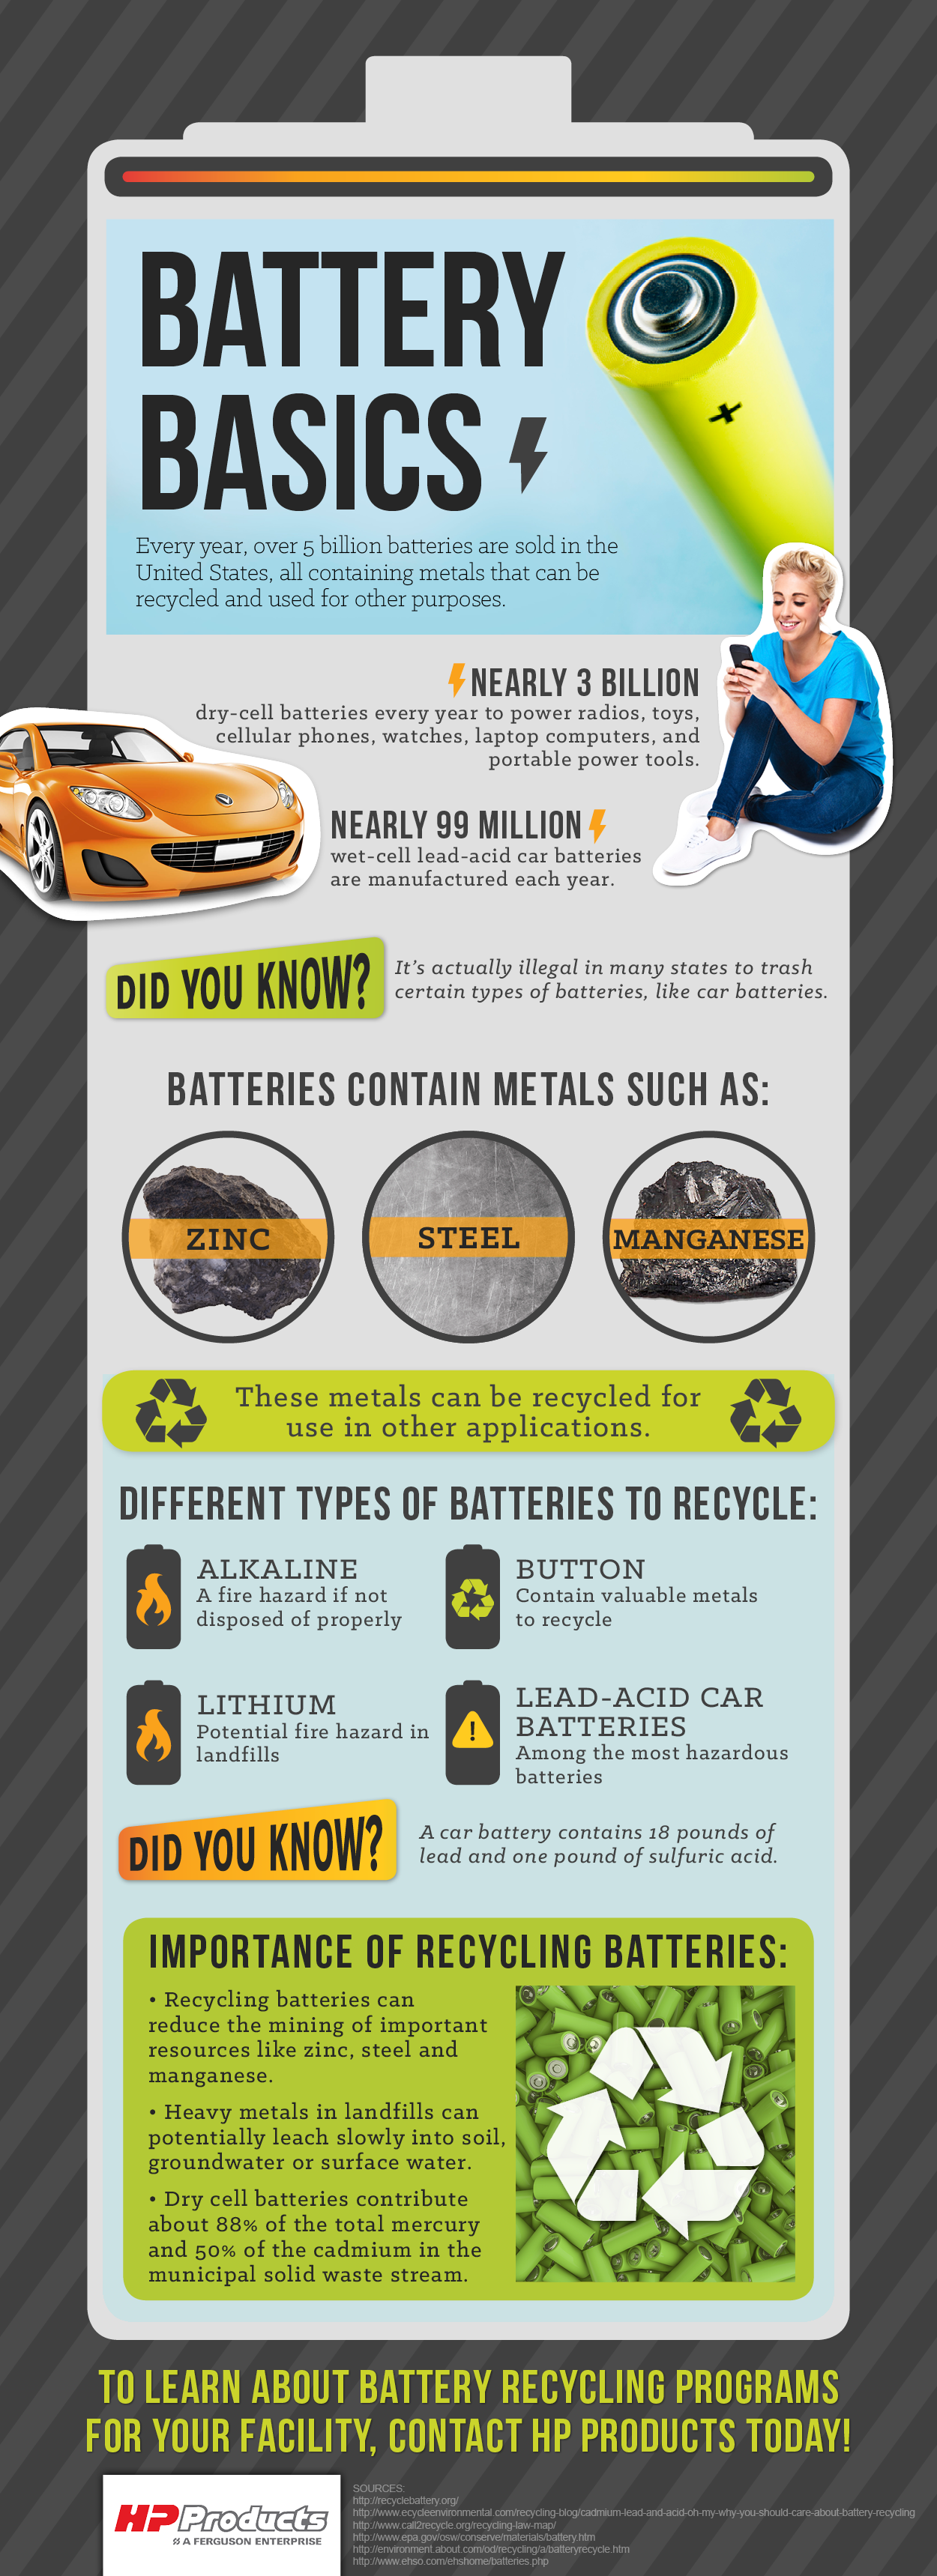 Alldiyideas Com Dreams Made Real Batteries Recycling Information Recycling